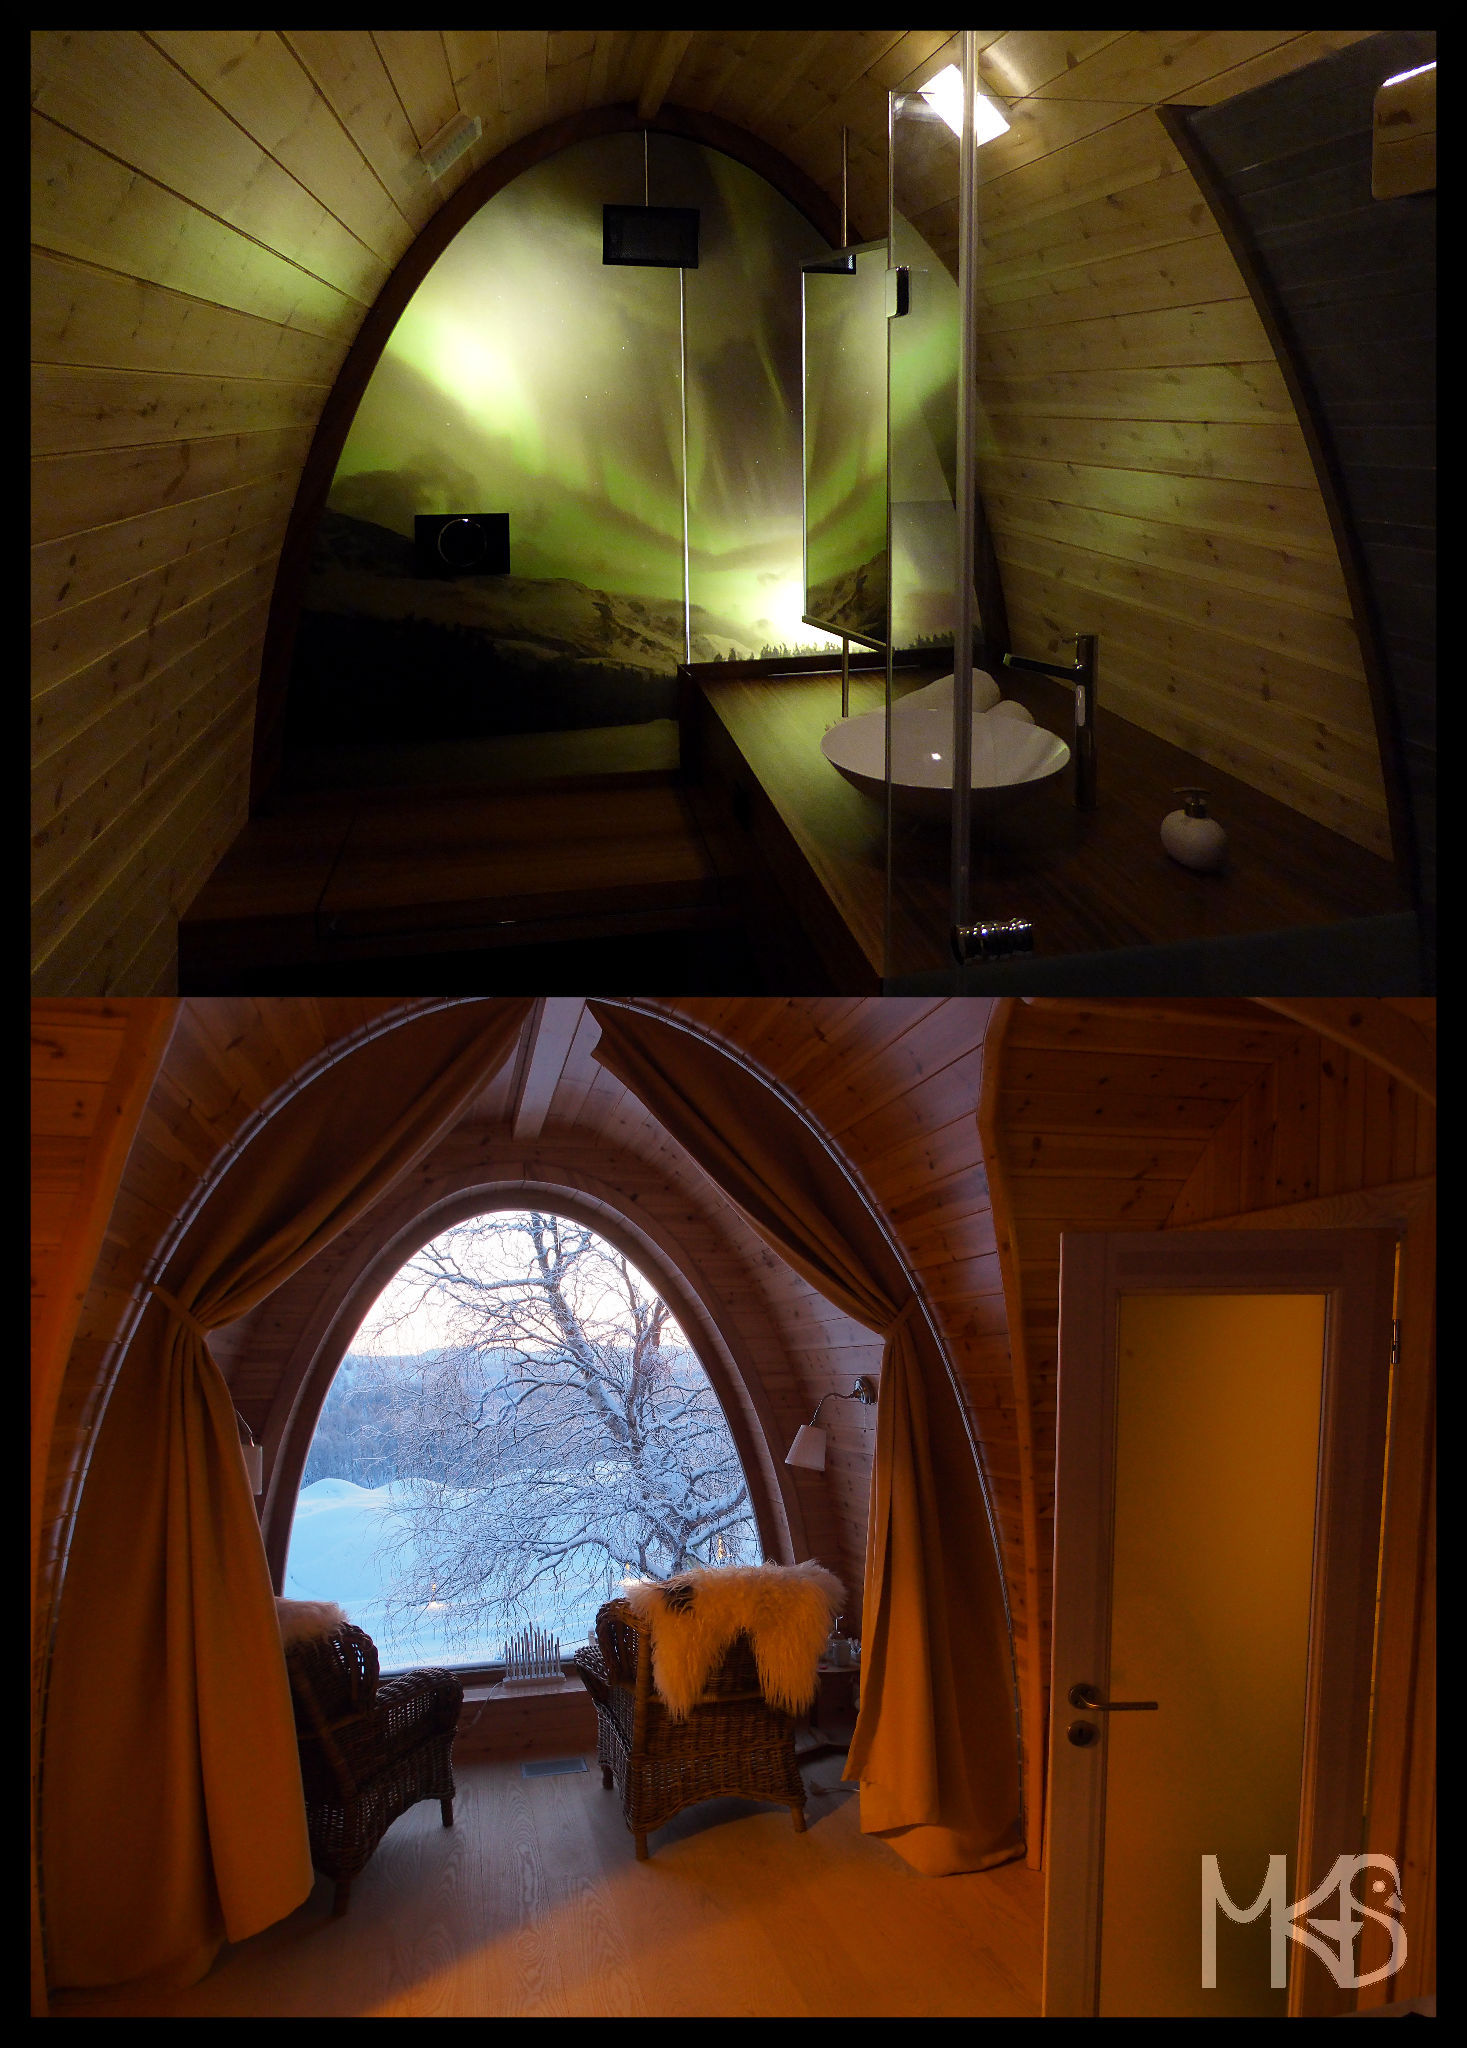 Inside Gamme cabins, the Snow Hotel, Kirkenes